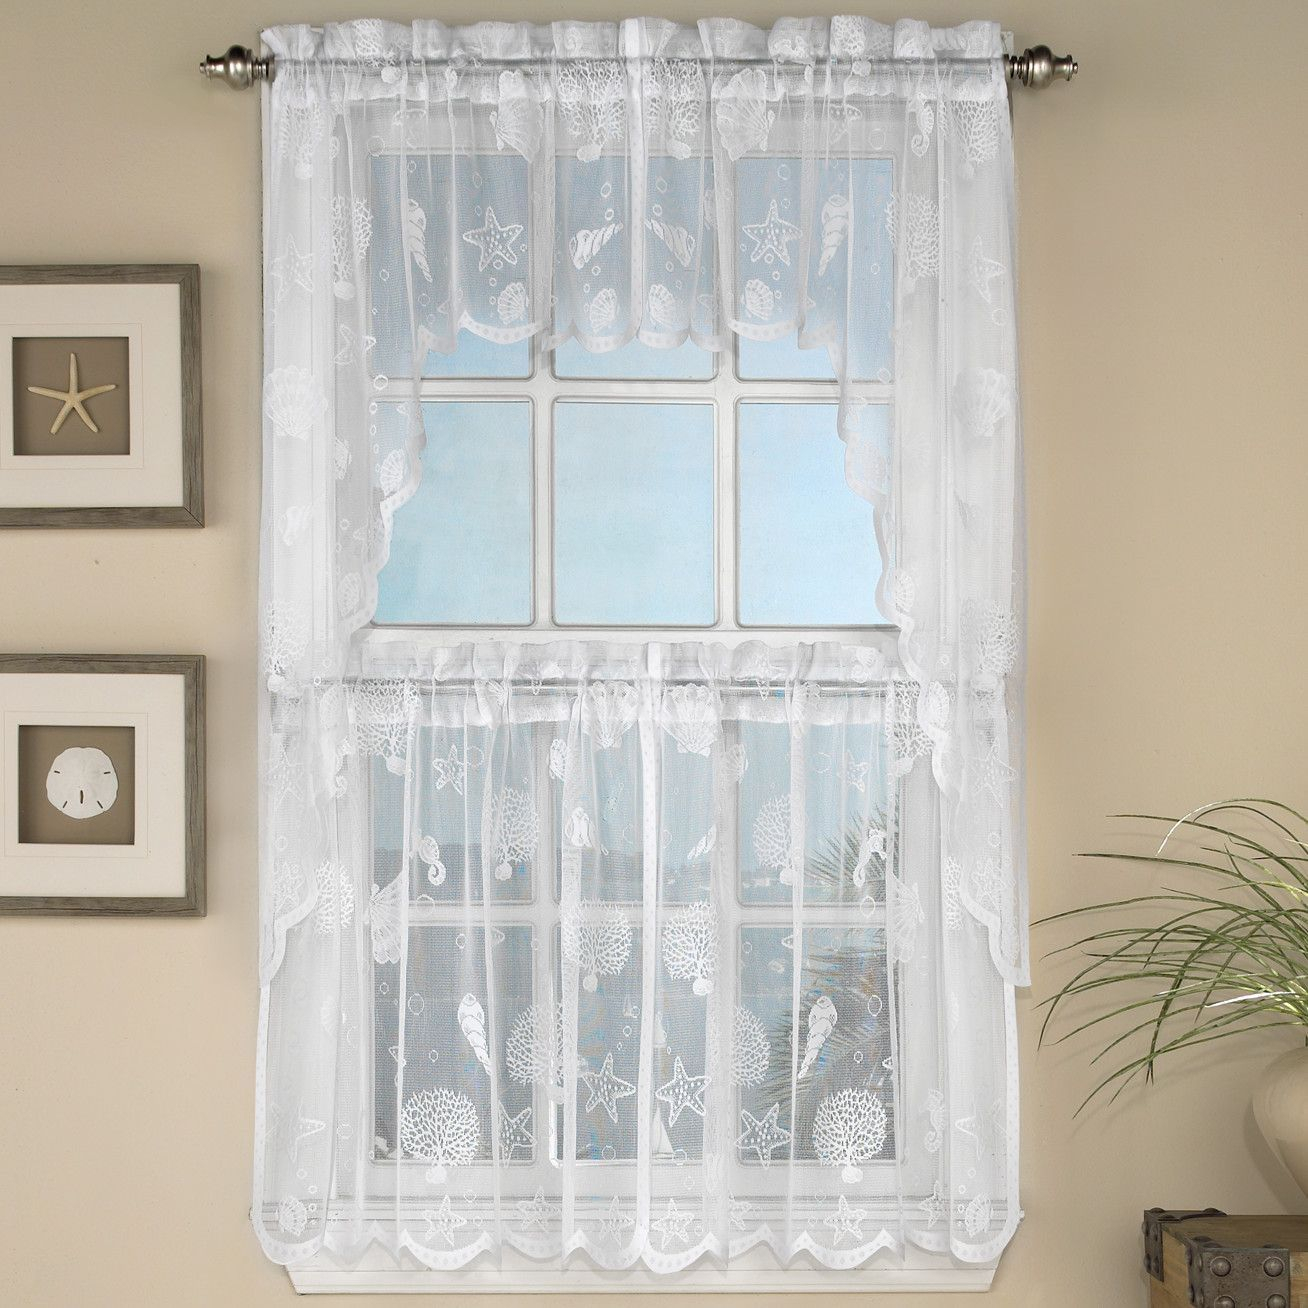 Reef Marine Semi Sheer Rod Pocket Kitchen Curtain Panels With Regard To Semi Sheer Rod Pocket Kitchen Curtain Valance And Tiers Sets (View 15 of 20)